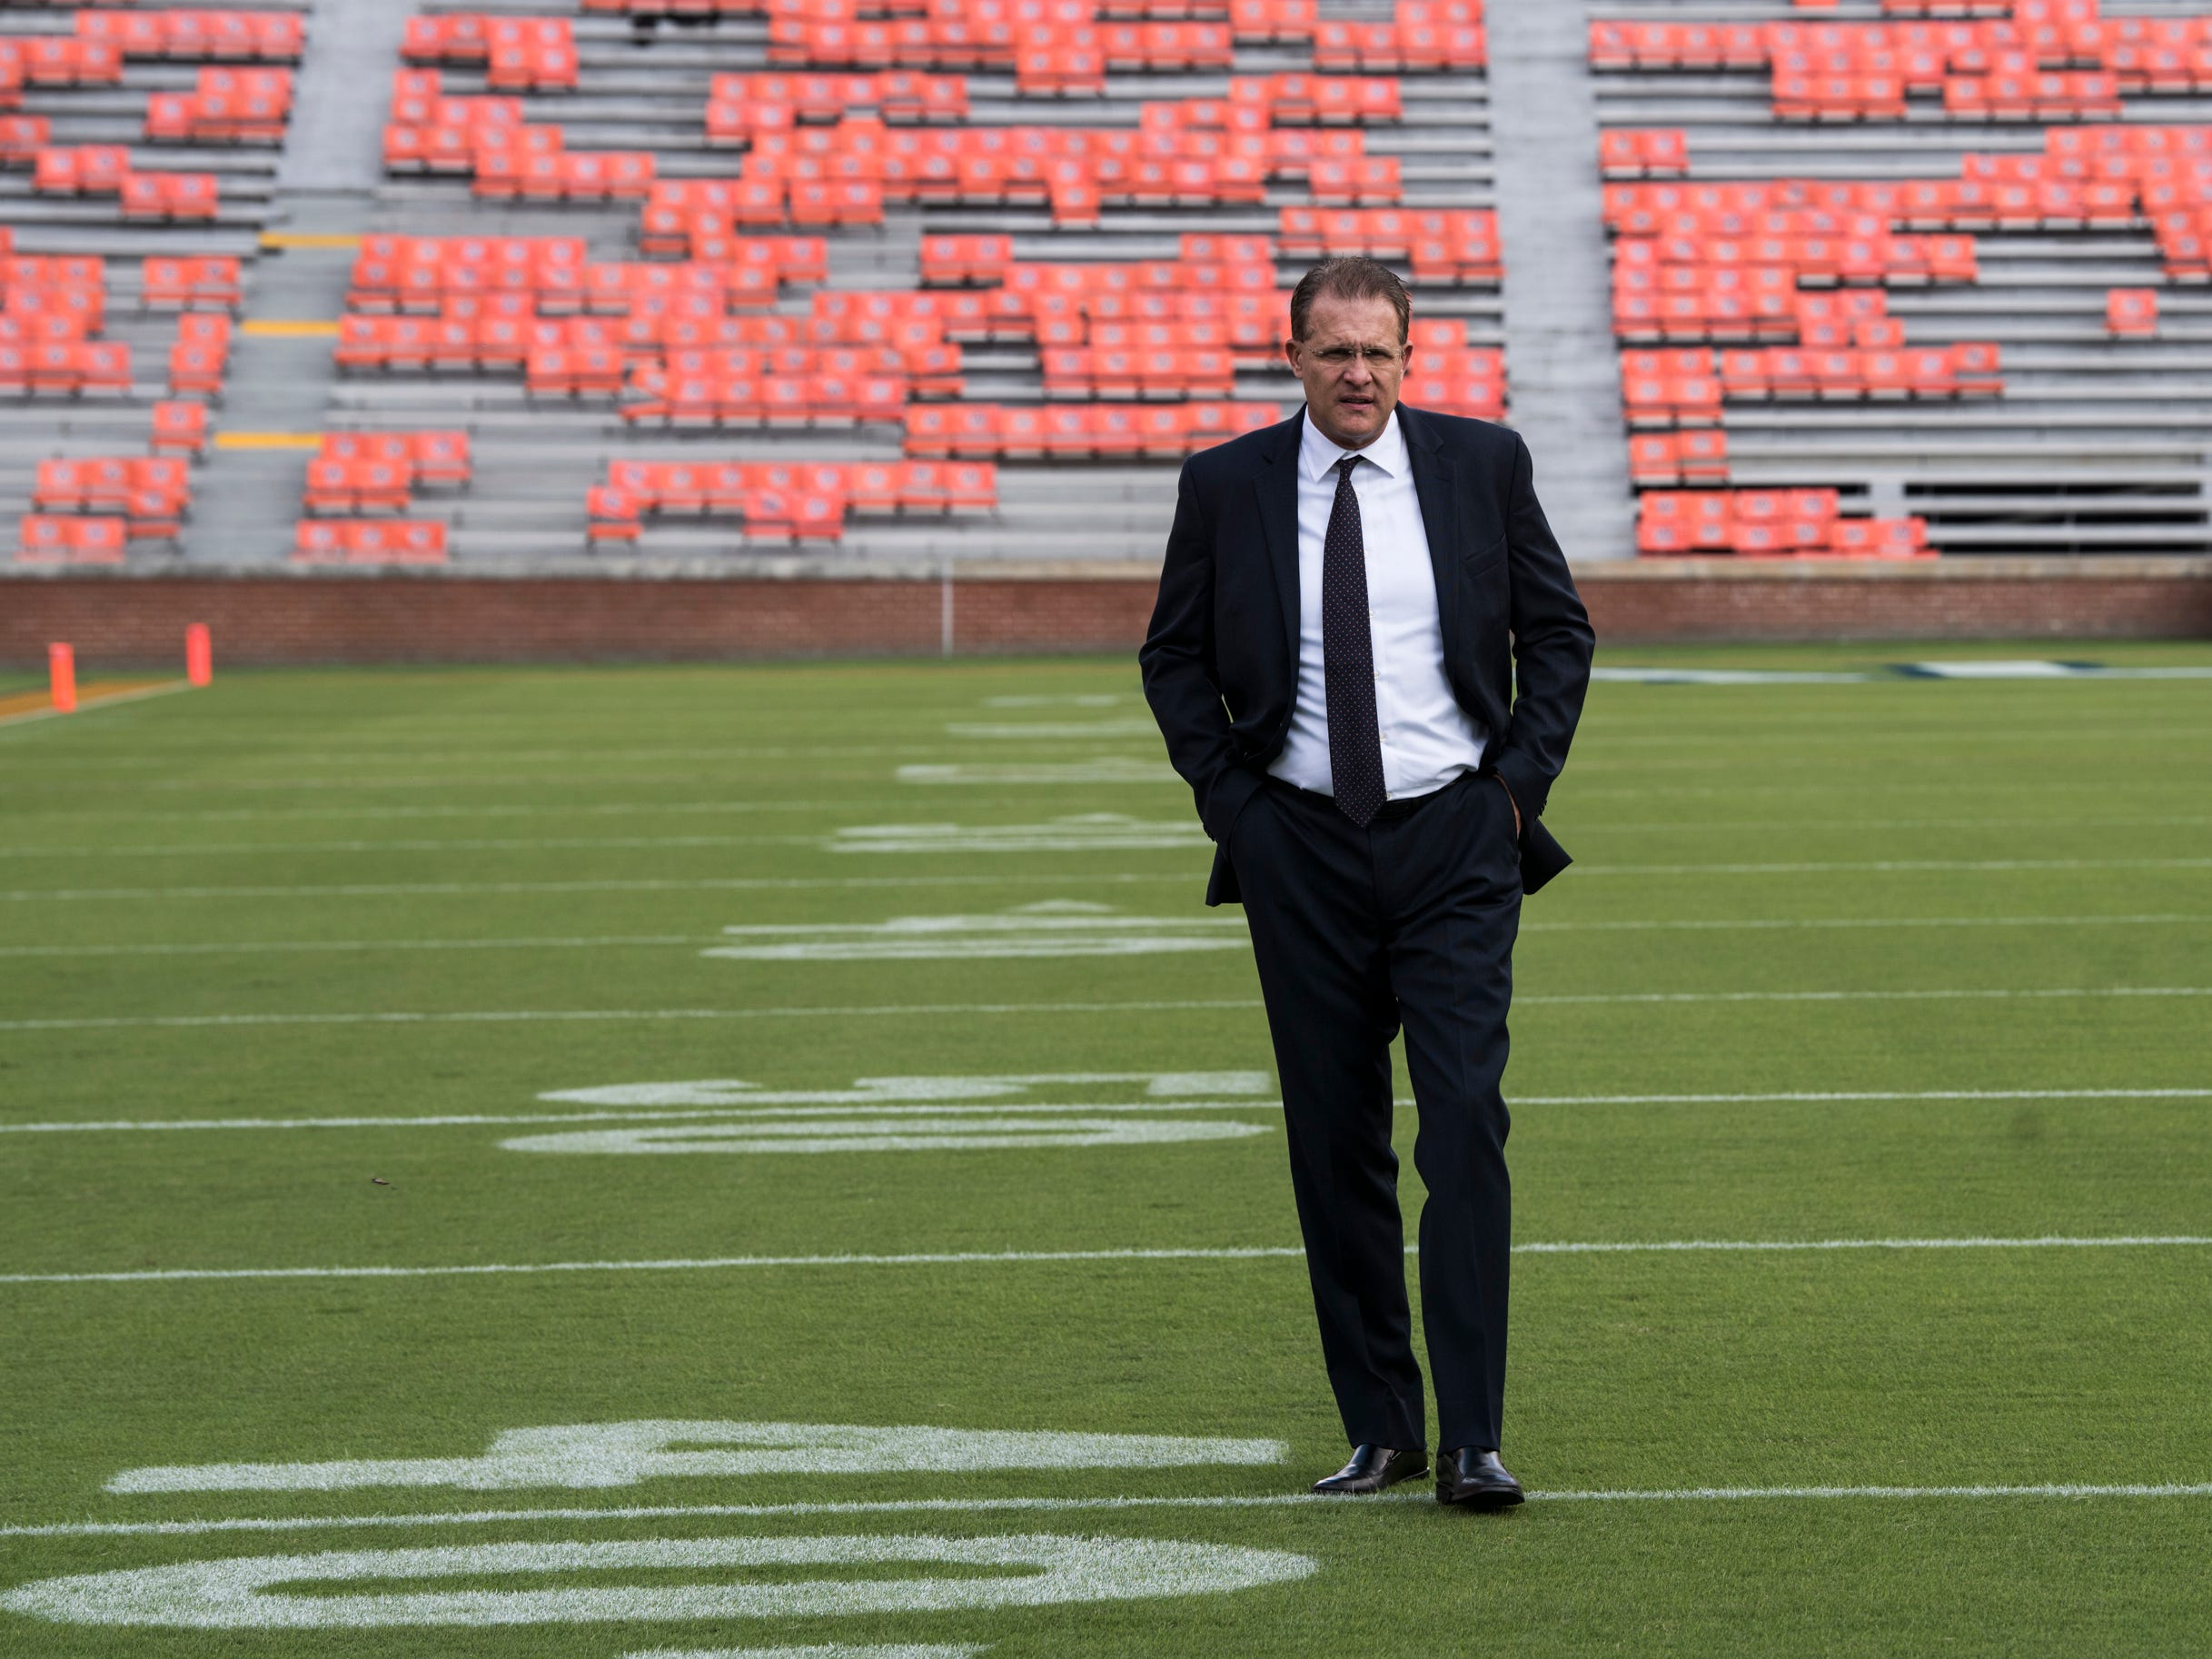 Auburn head coach Gus Malzahn walks on to the field with his team following the Tiger Walk at Jordan-Hare Stadium in Auburn, Ala., on Saturday, Sept. 29, 2018.